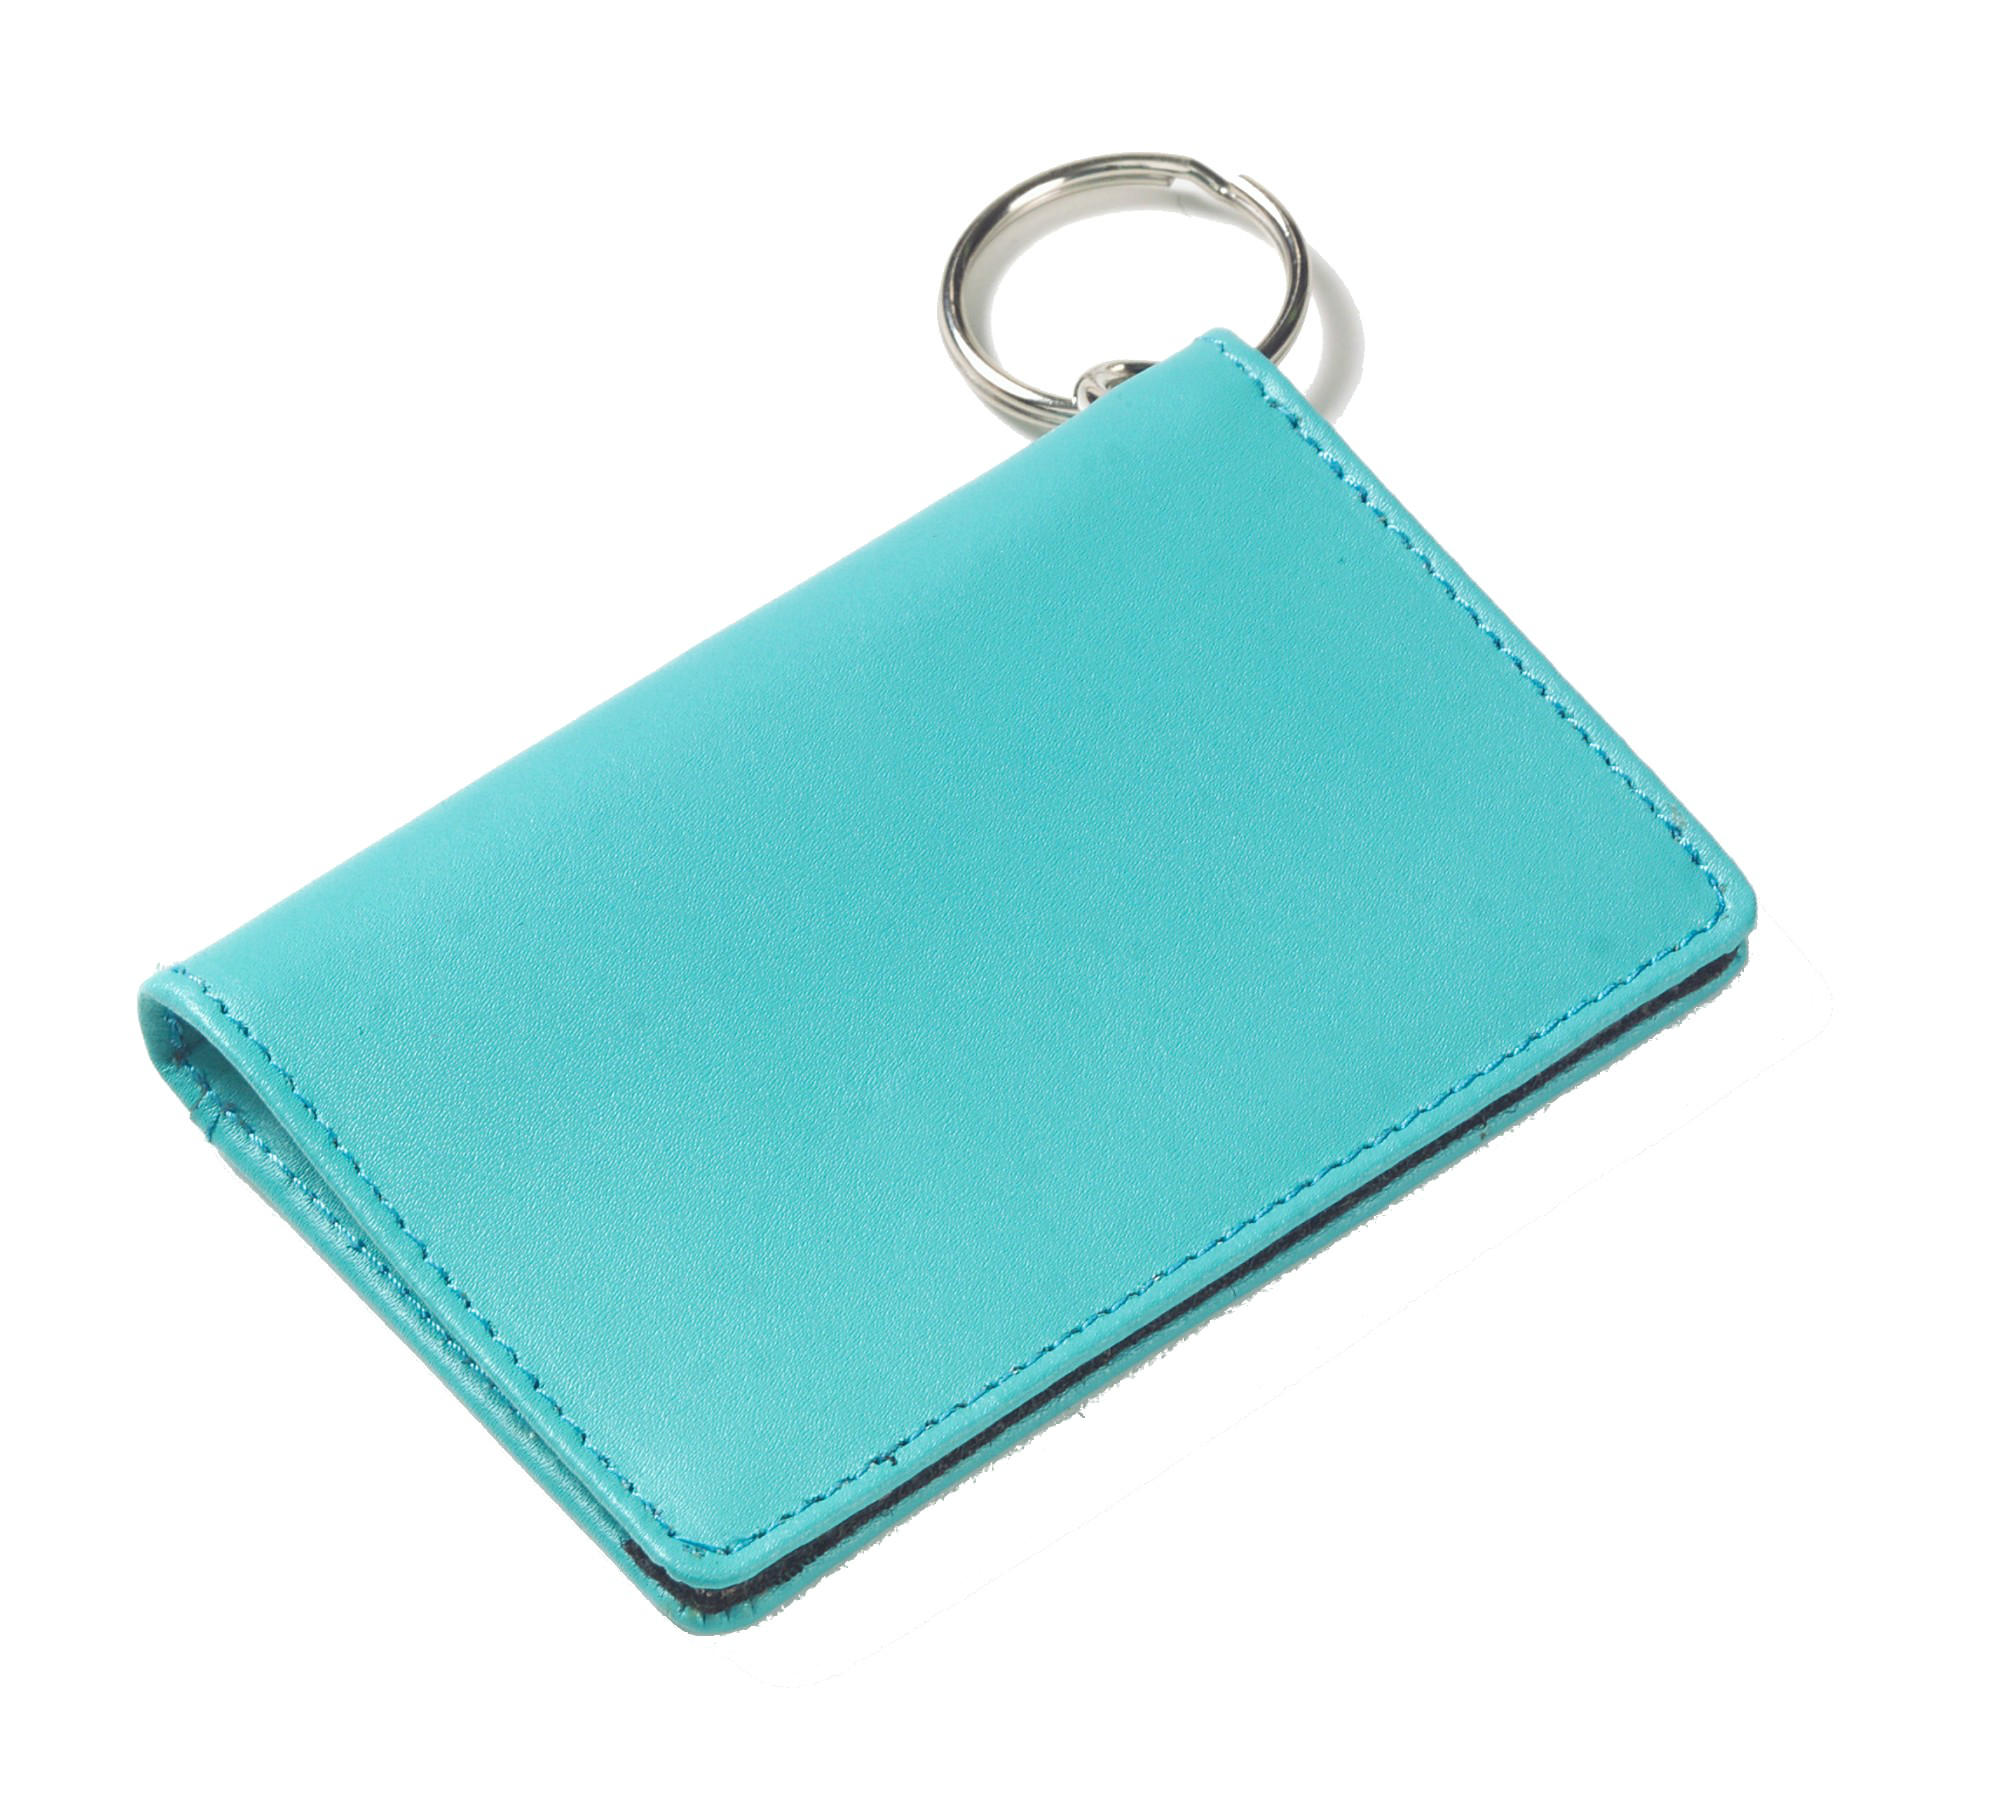 Clava Leather Colored Leather ID/ Key Chain Wallet